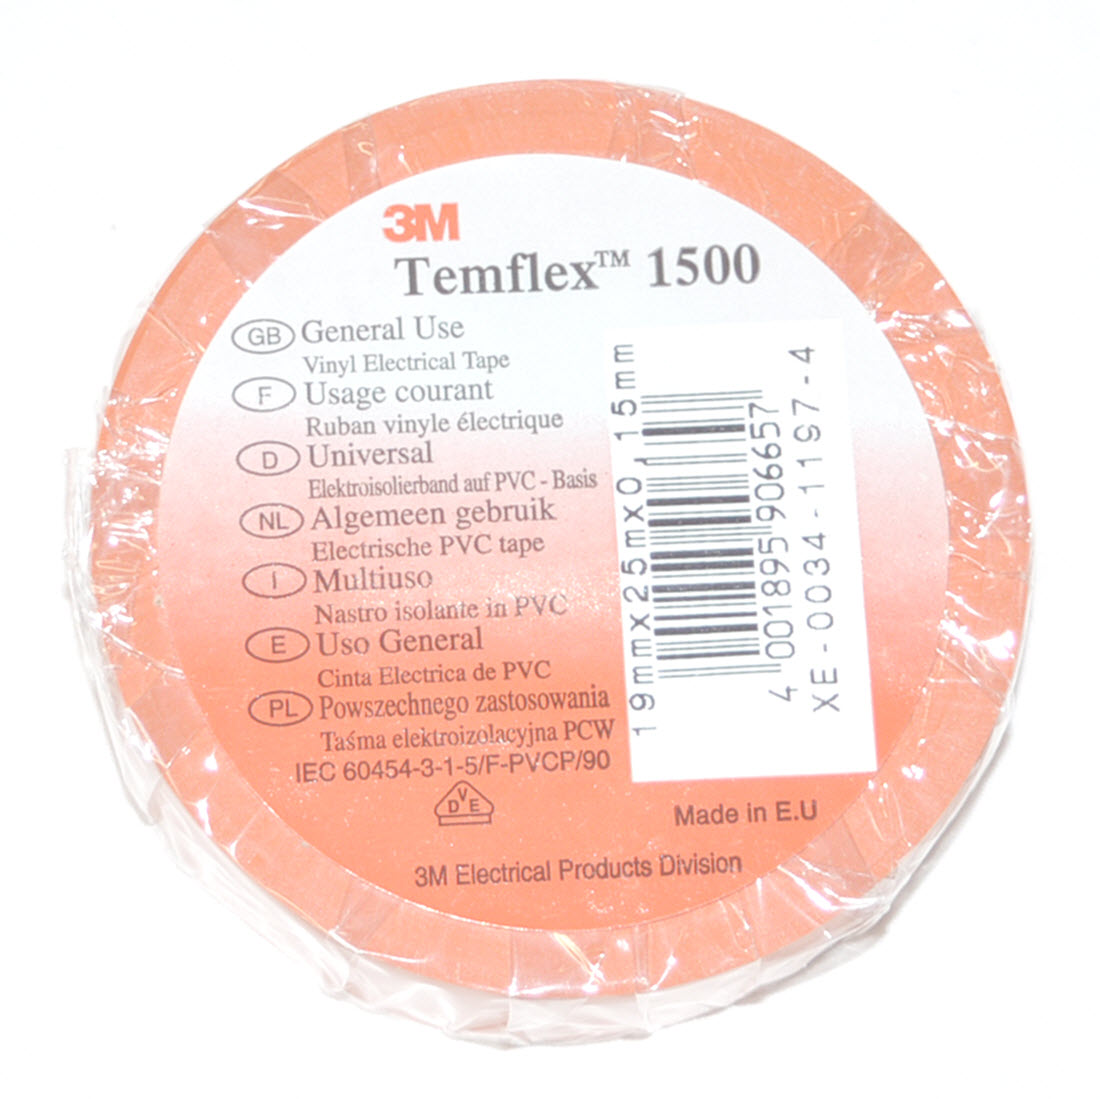 Orange insulating tape